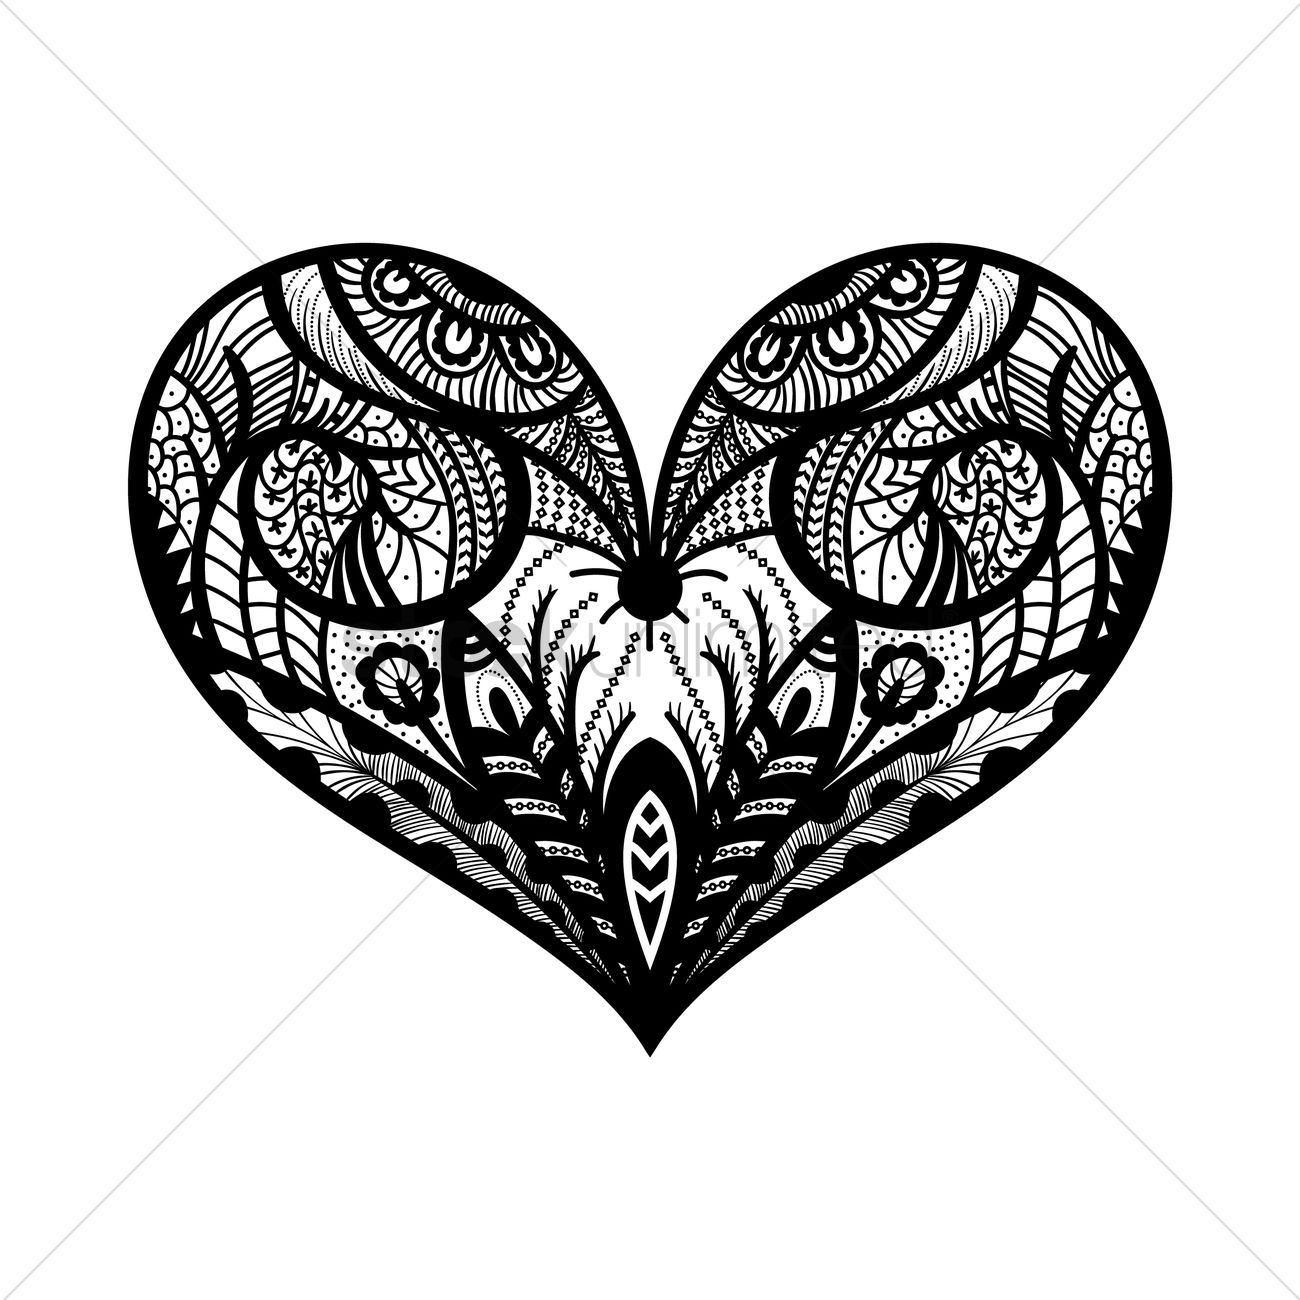 Decorative heart design Vector Image - 1570141 | StockUnlimited